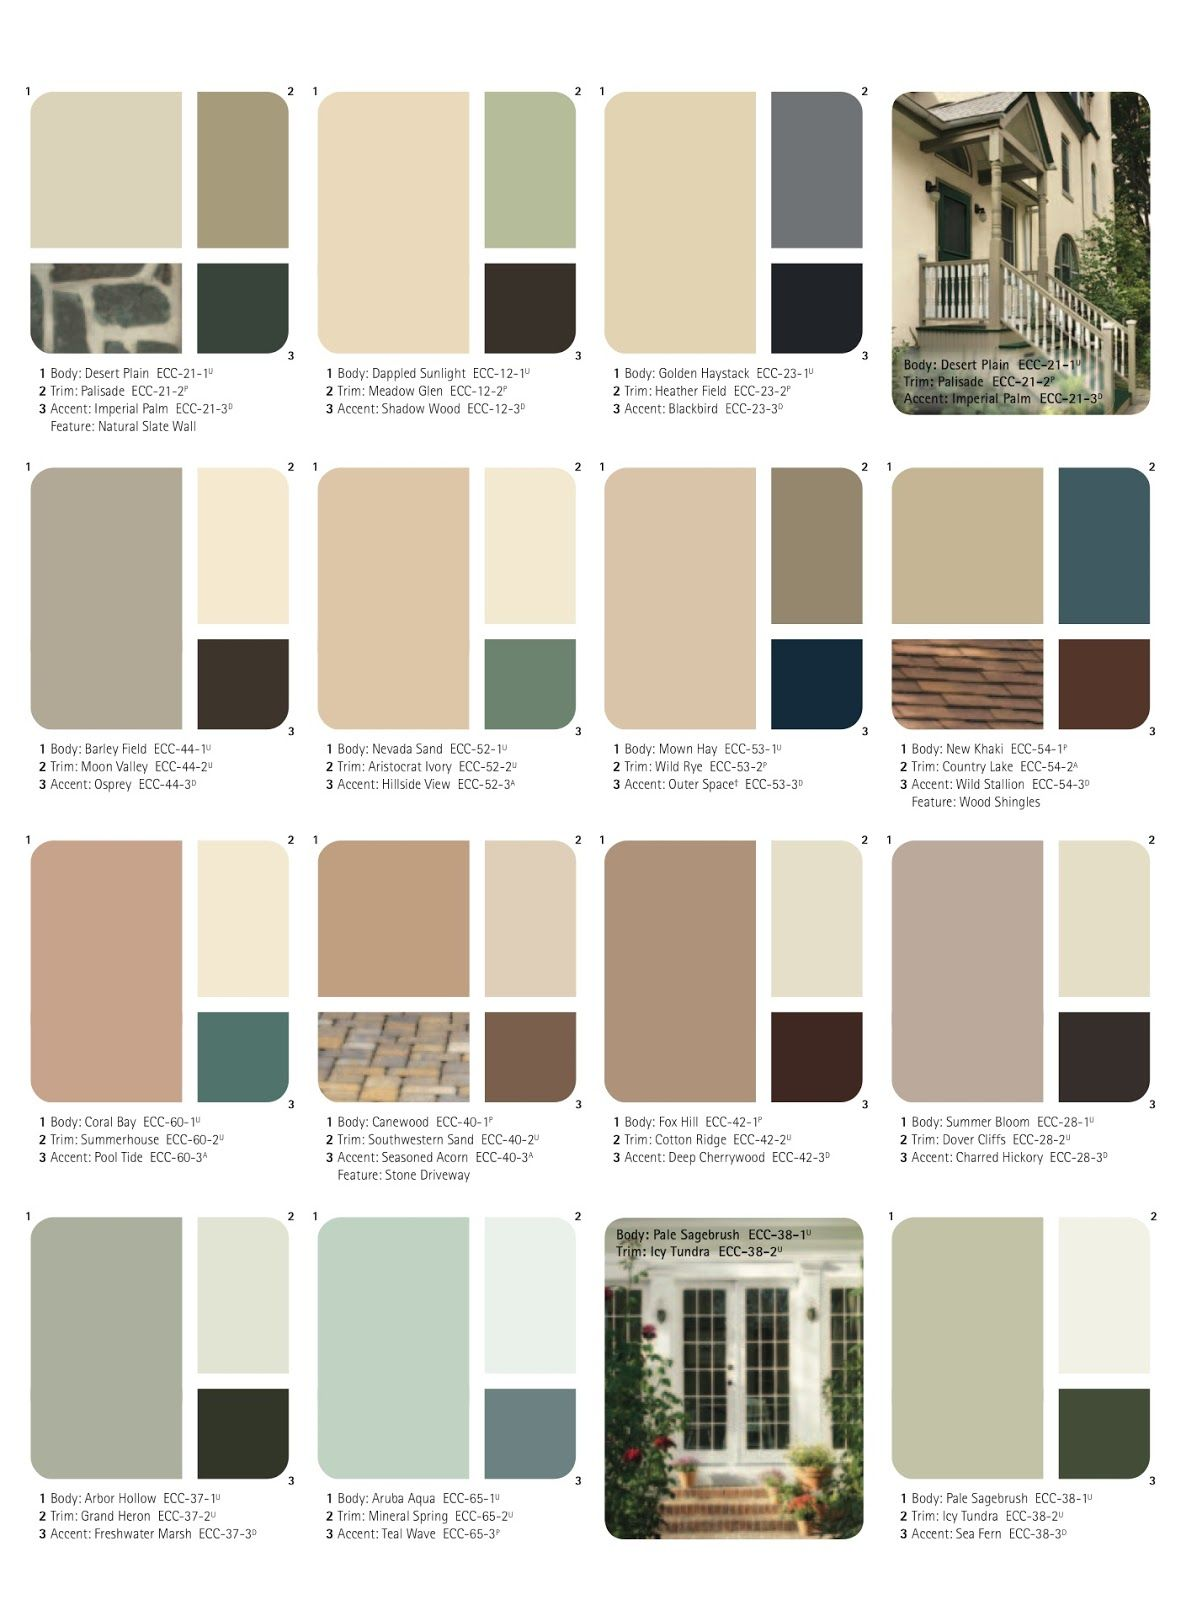 2014 exterior shutter and door paint schemes record the - Exterior house paint colors 2014 ...